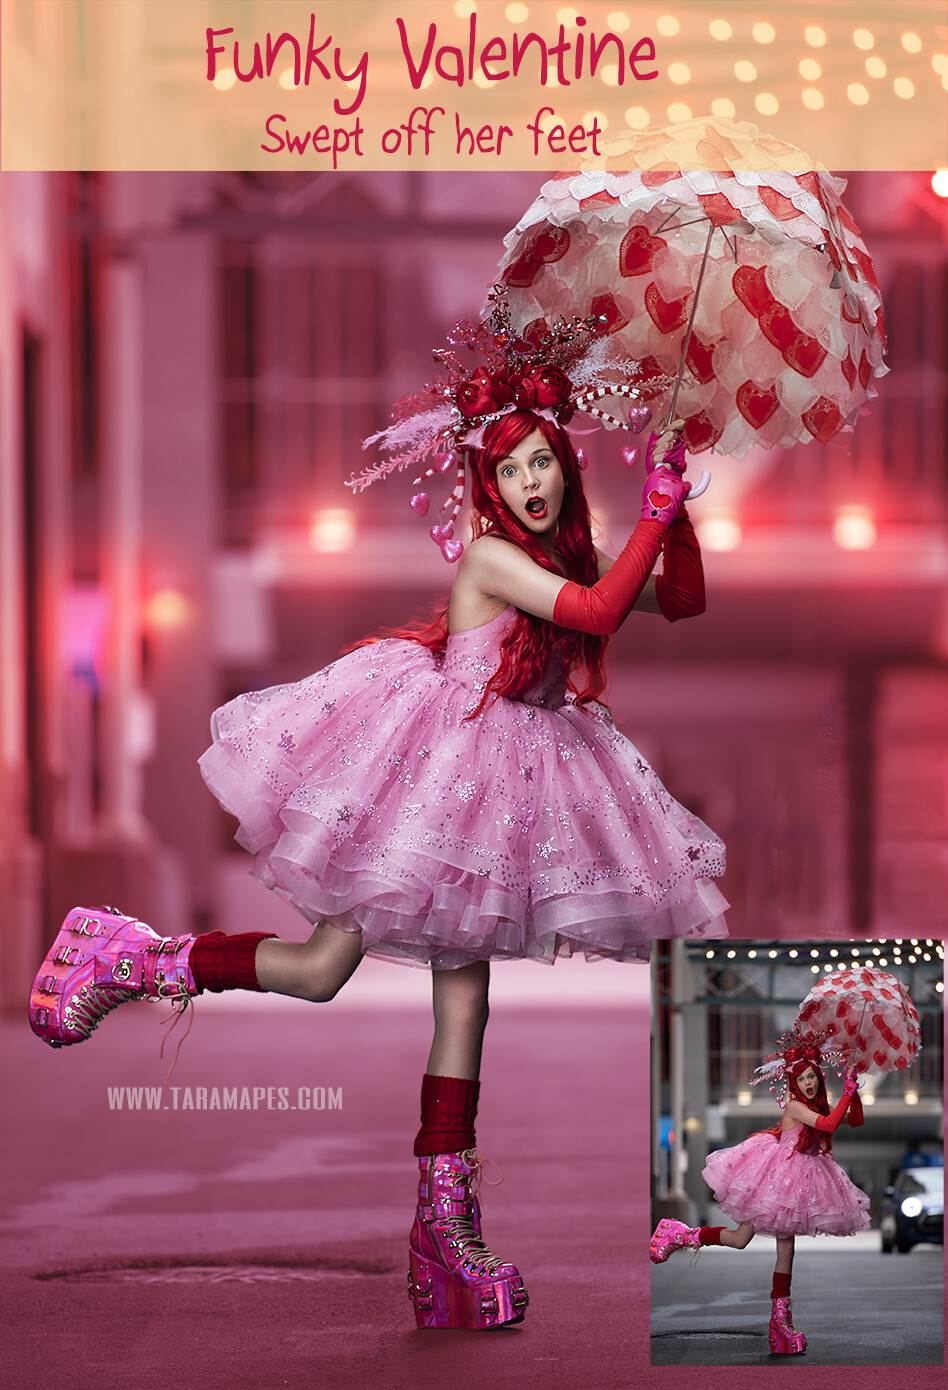 Funky Valentine  Sweep Me Off My Feet - Painterly Tutorial - Valentine Shoot - - Photoshop Workflow Action Set Included- Fine Art Tutorial by Tara Mapes